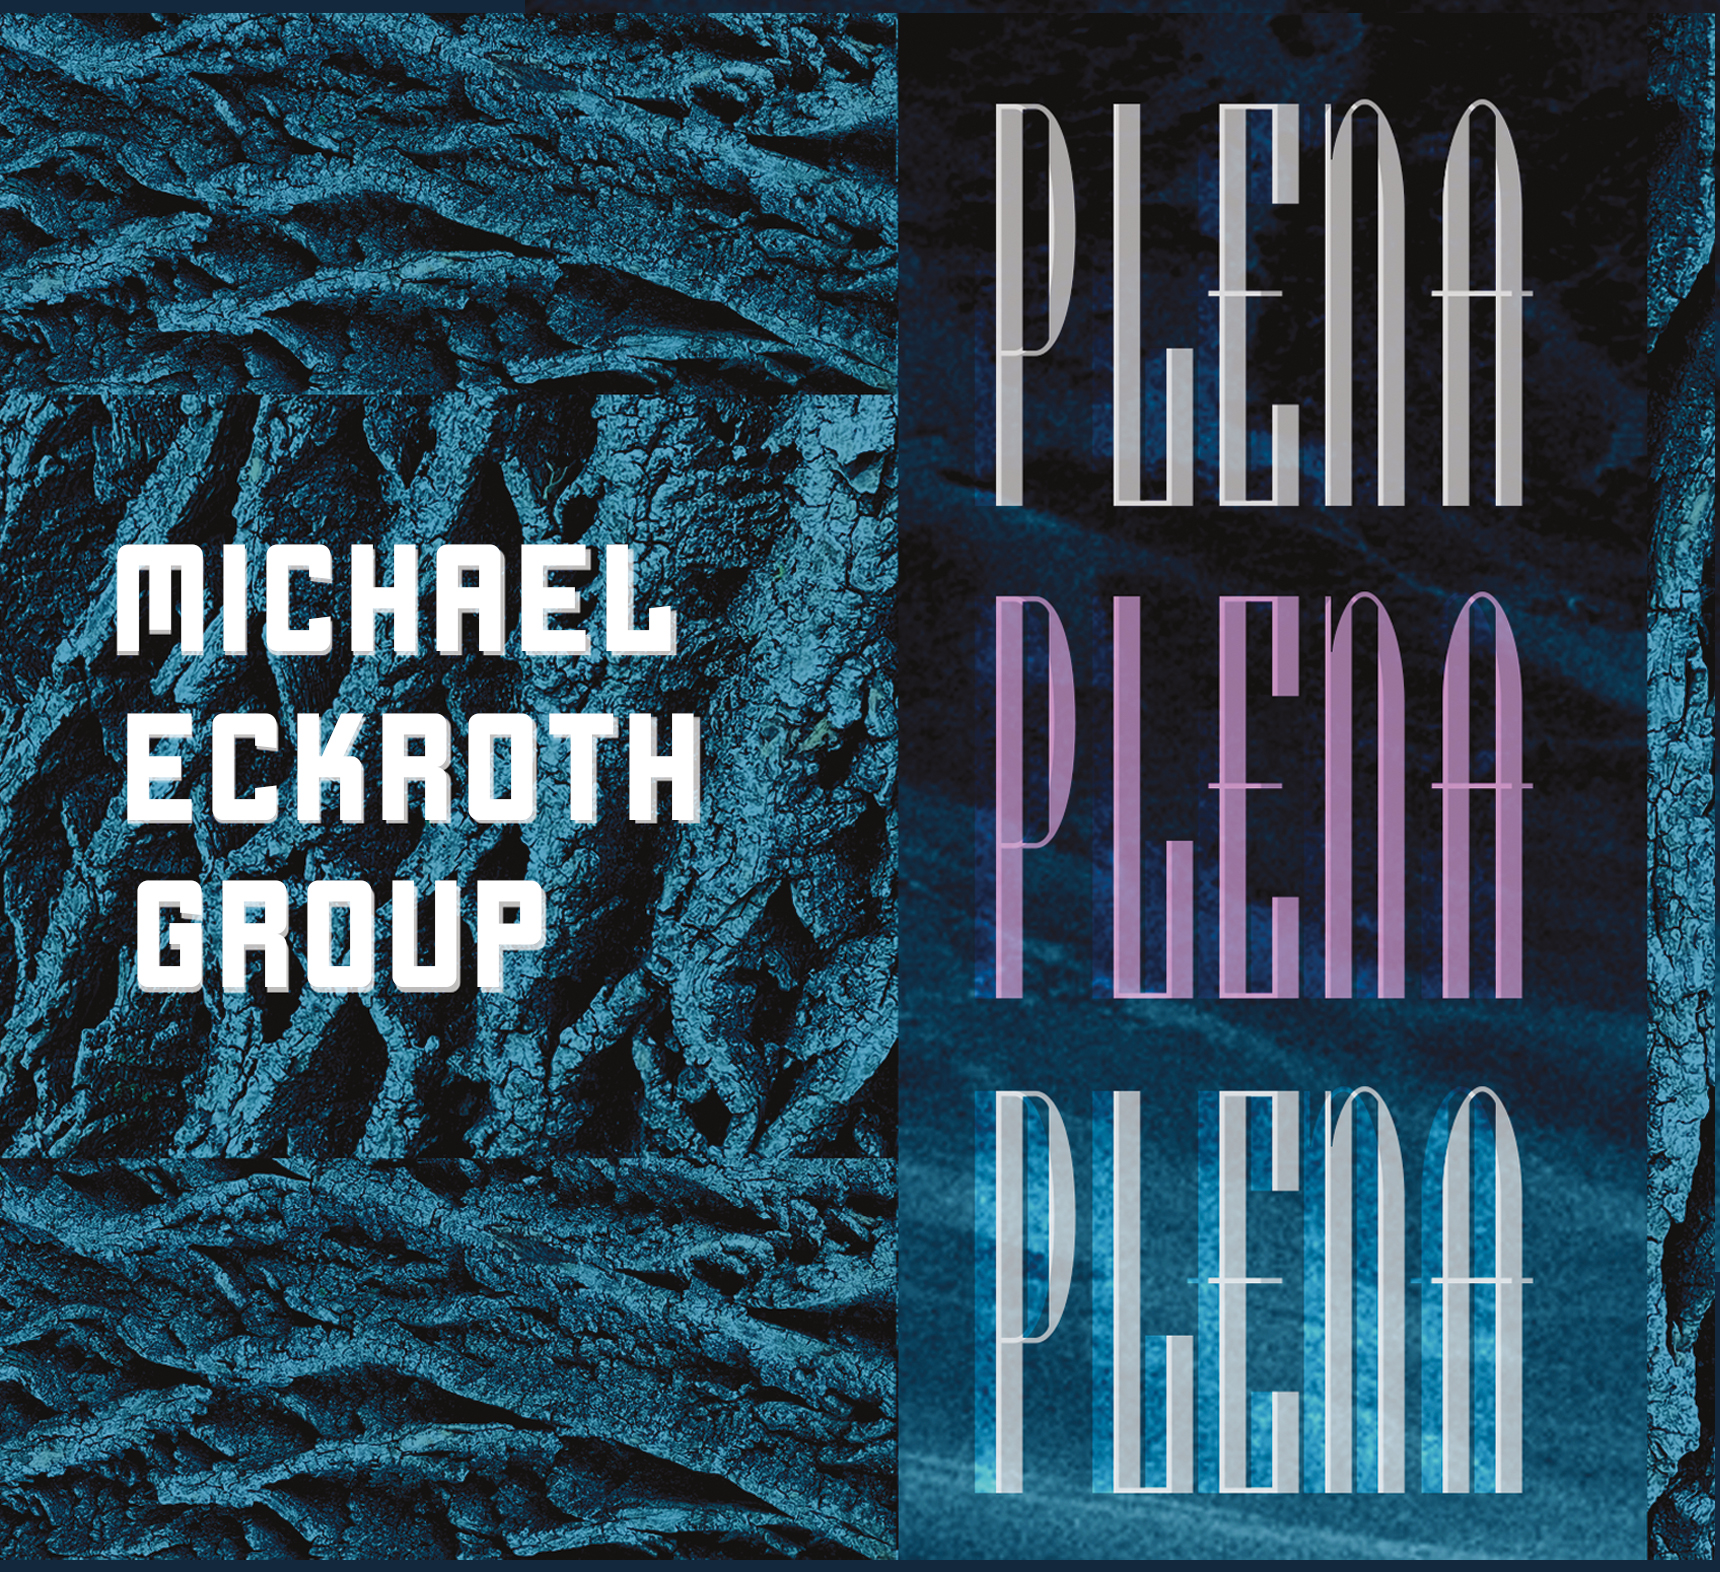 NEW RELEASE: Michael Eckroth's PLENA (f/ special guests John Fedchock & Brian Lynch) is out October 15, 2021